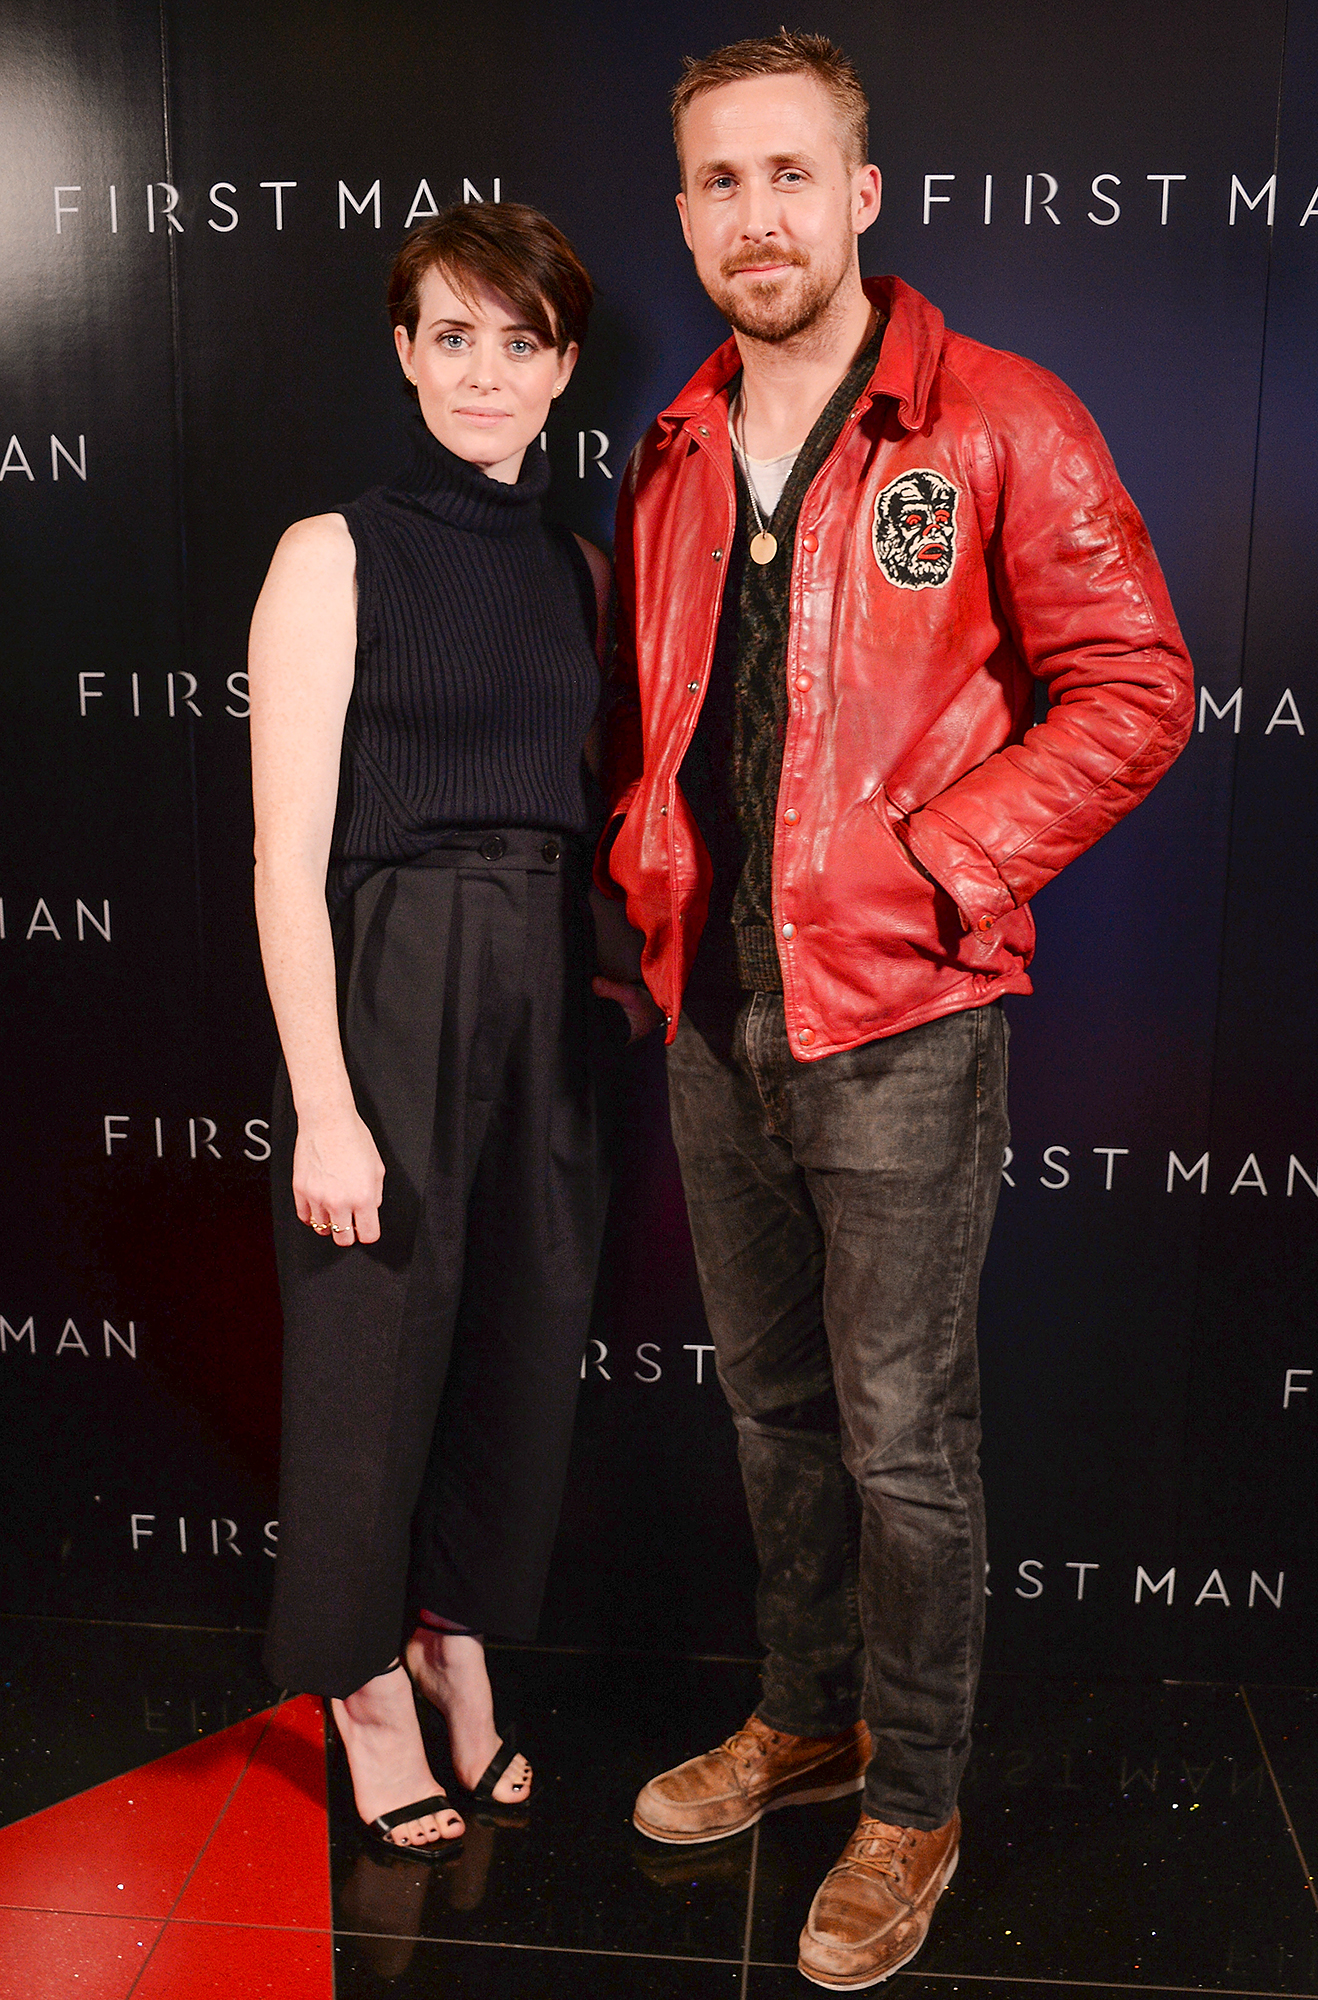 First Man Special Screening & Q&A